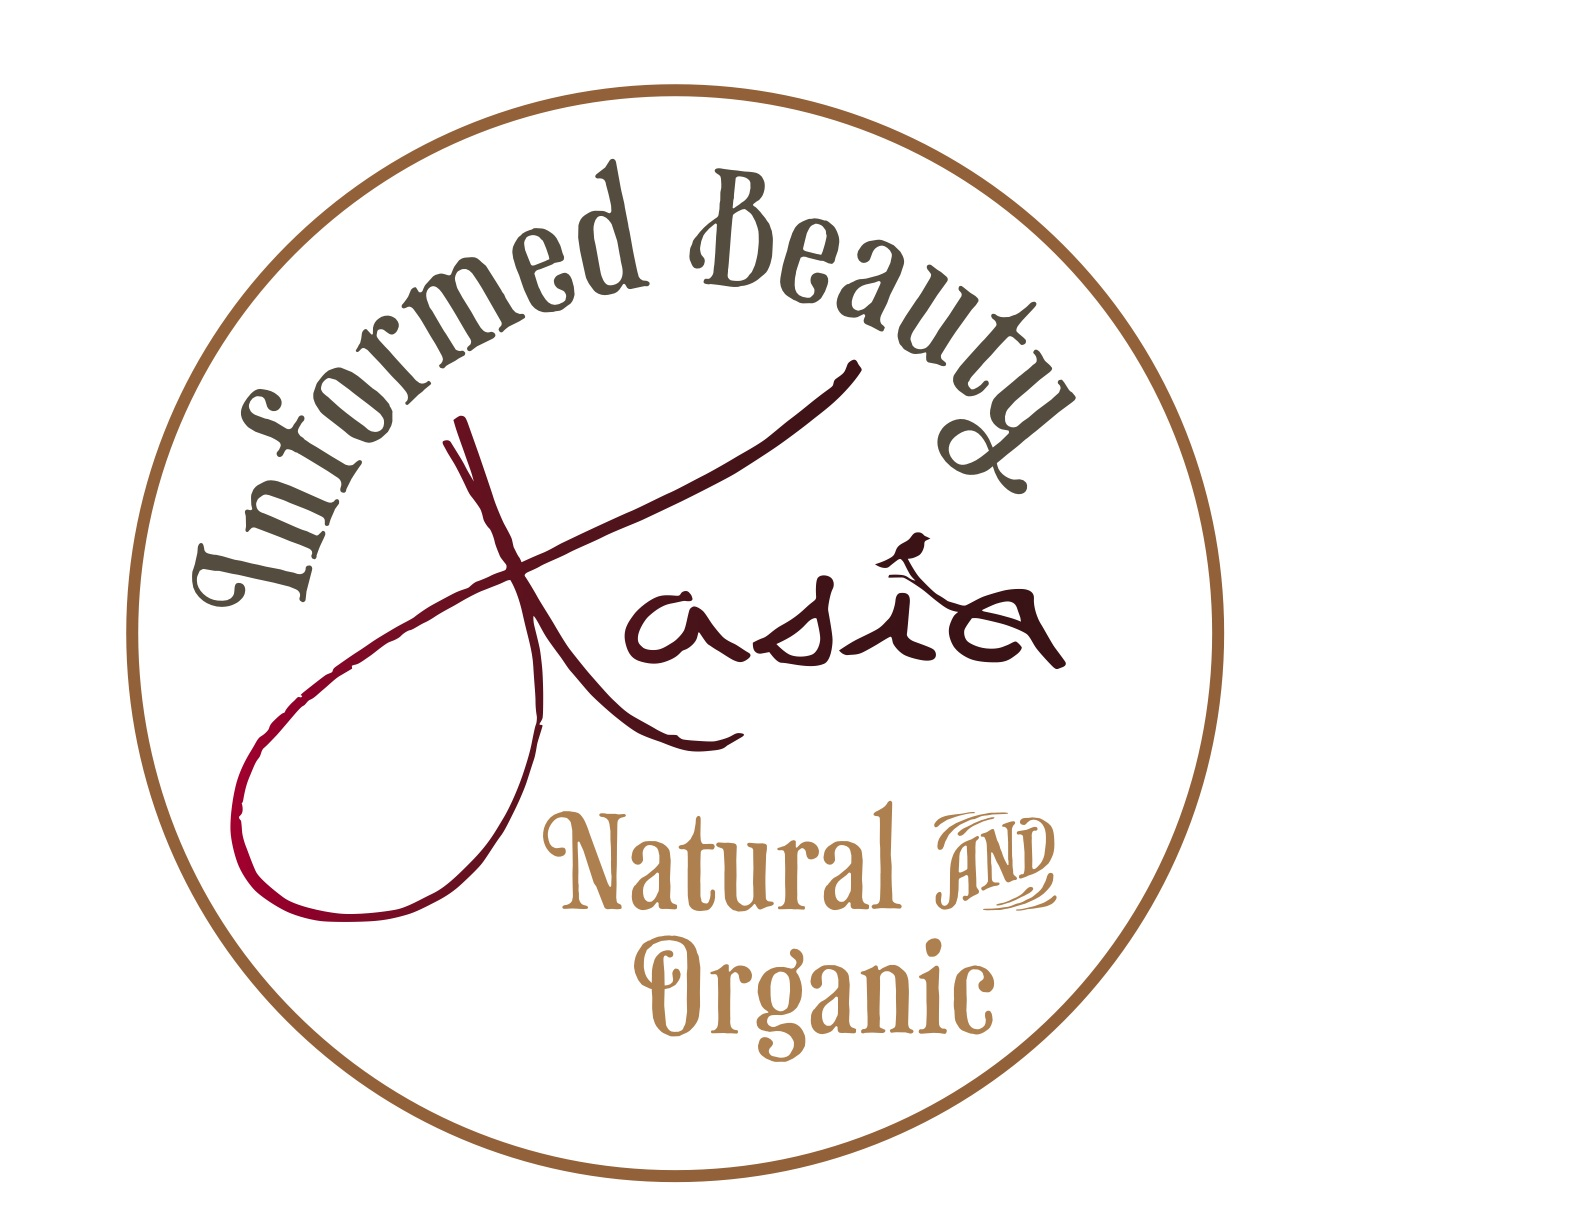 Informed beautylogotype